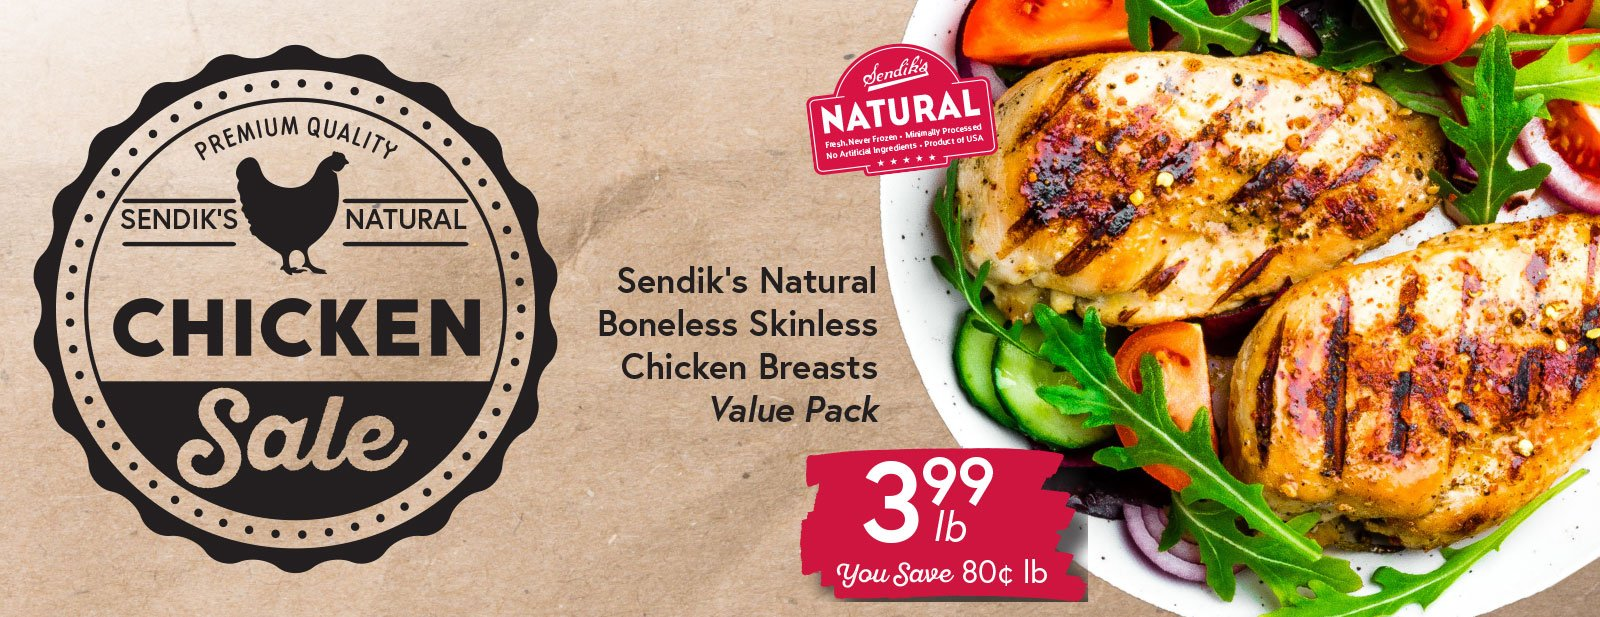 Sendik's Natural Boneless Skinless Chicken Breasts $3.99 lb